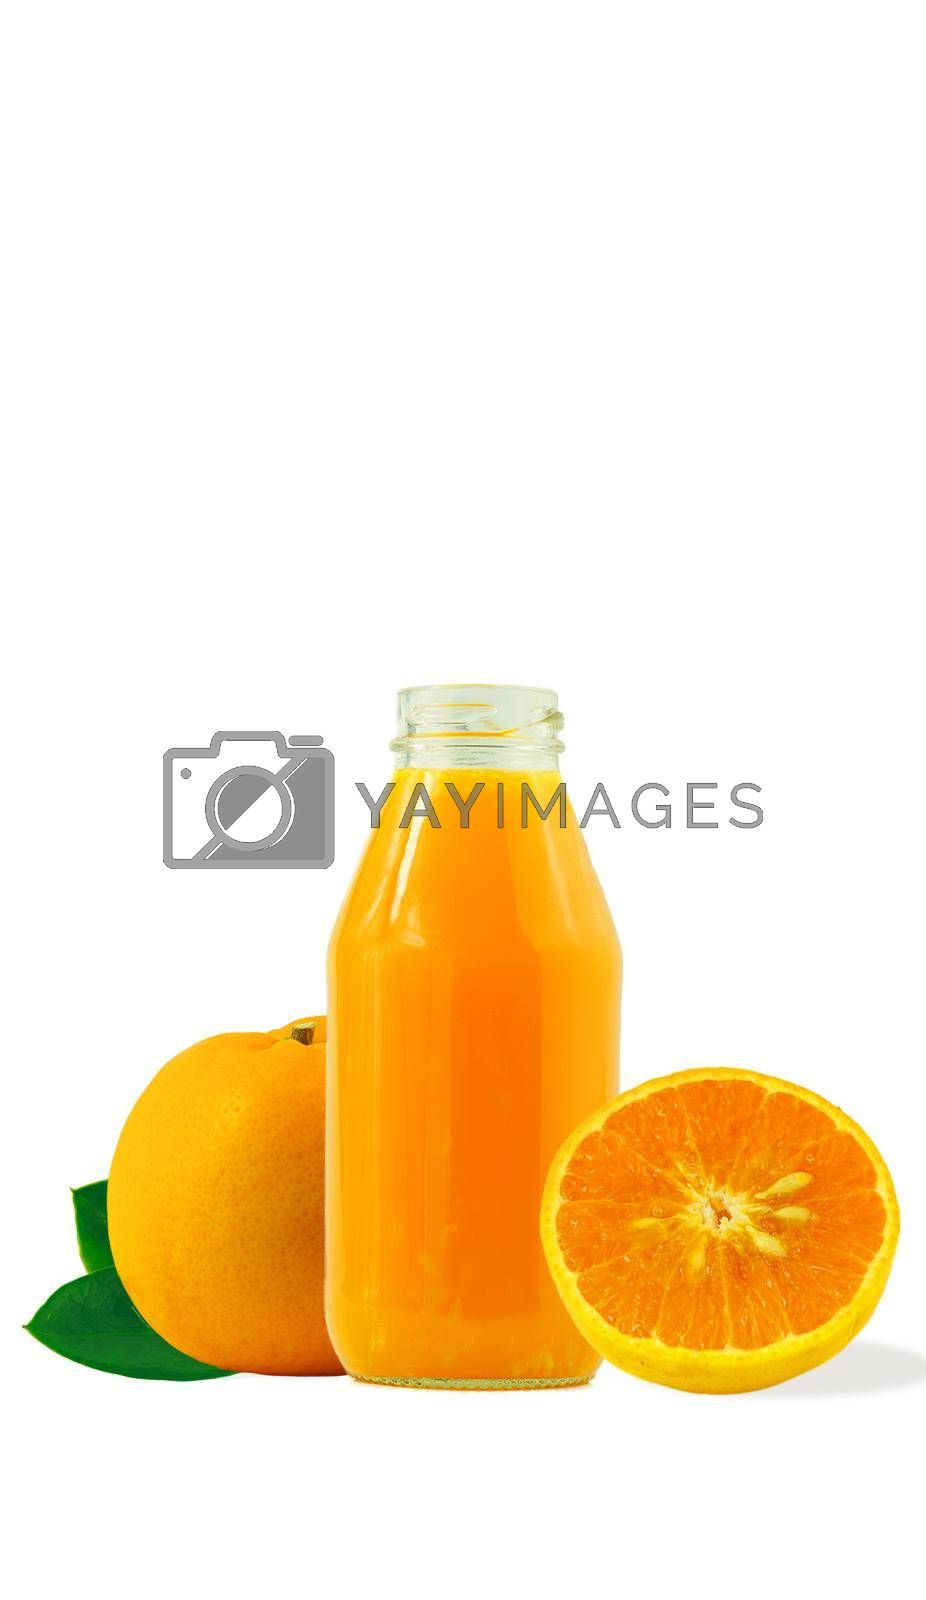 100% fresh-squeezed orange juice in a glass bottle And citrus fruit split on white background. Concept of how to live with a naturally refreshing drink that contains vitamin C